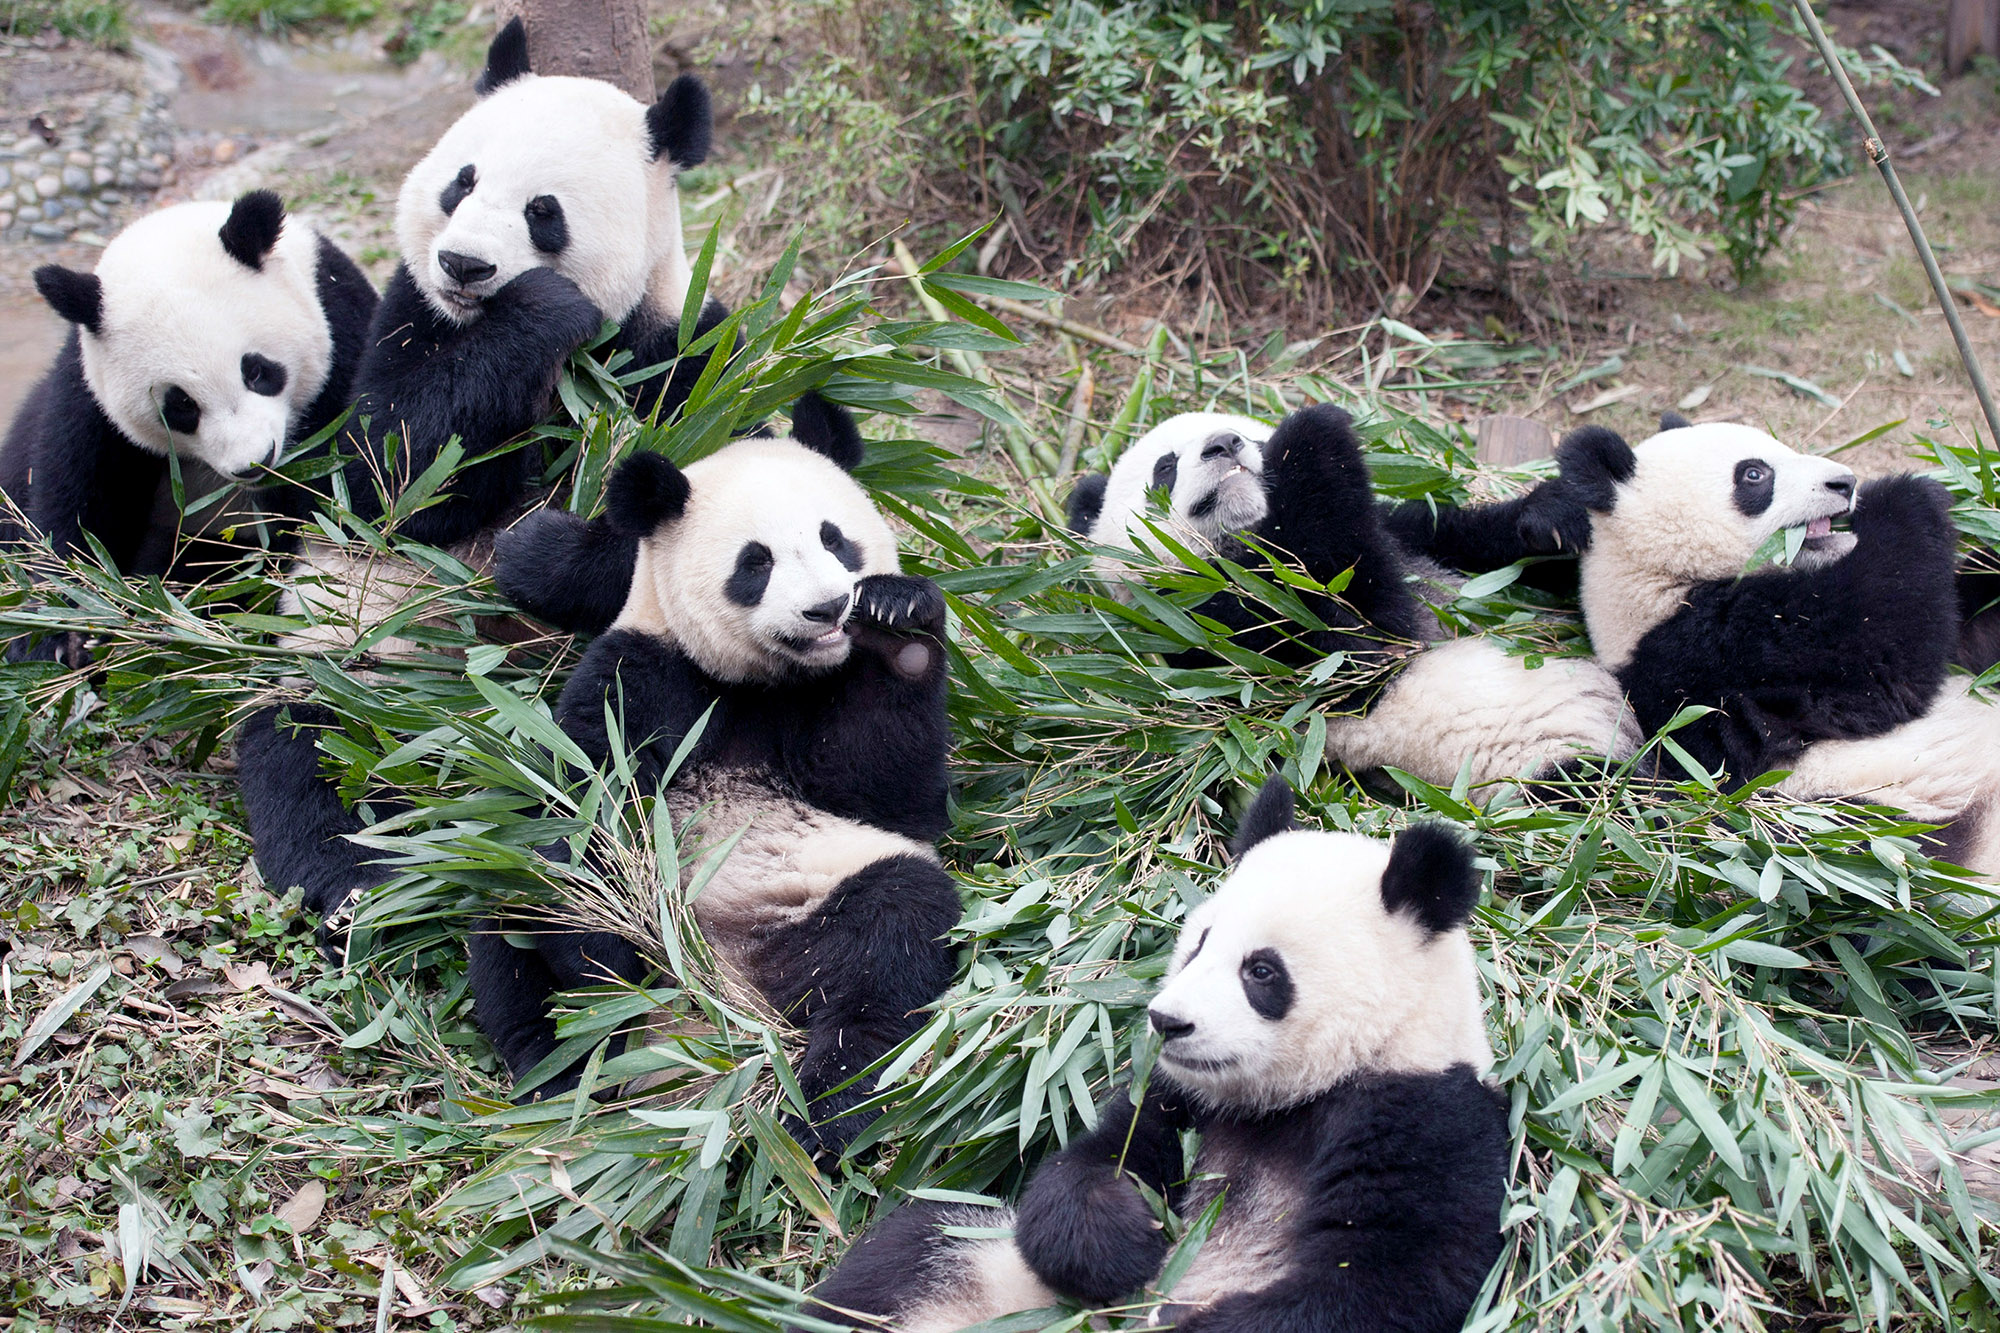 These cuddly pandas are more dangerous than they look